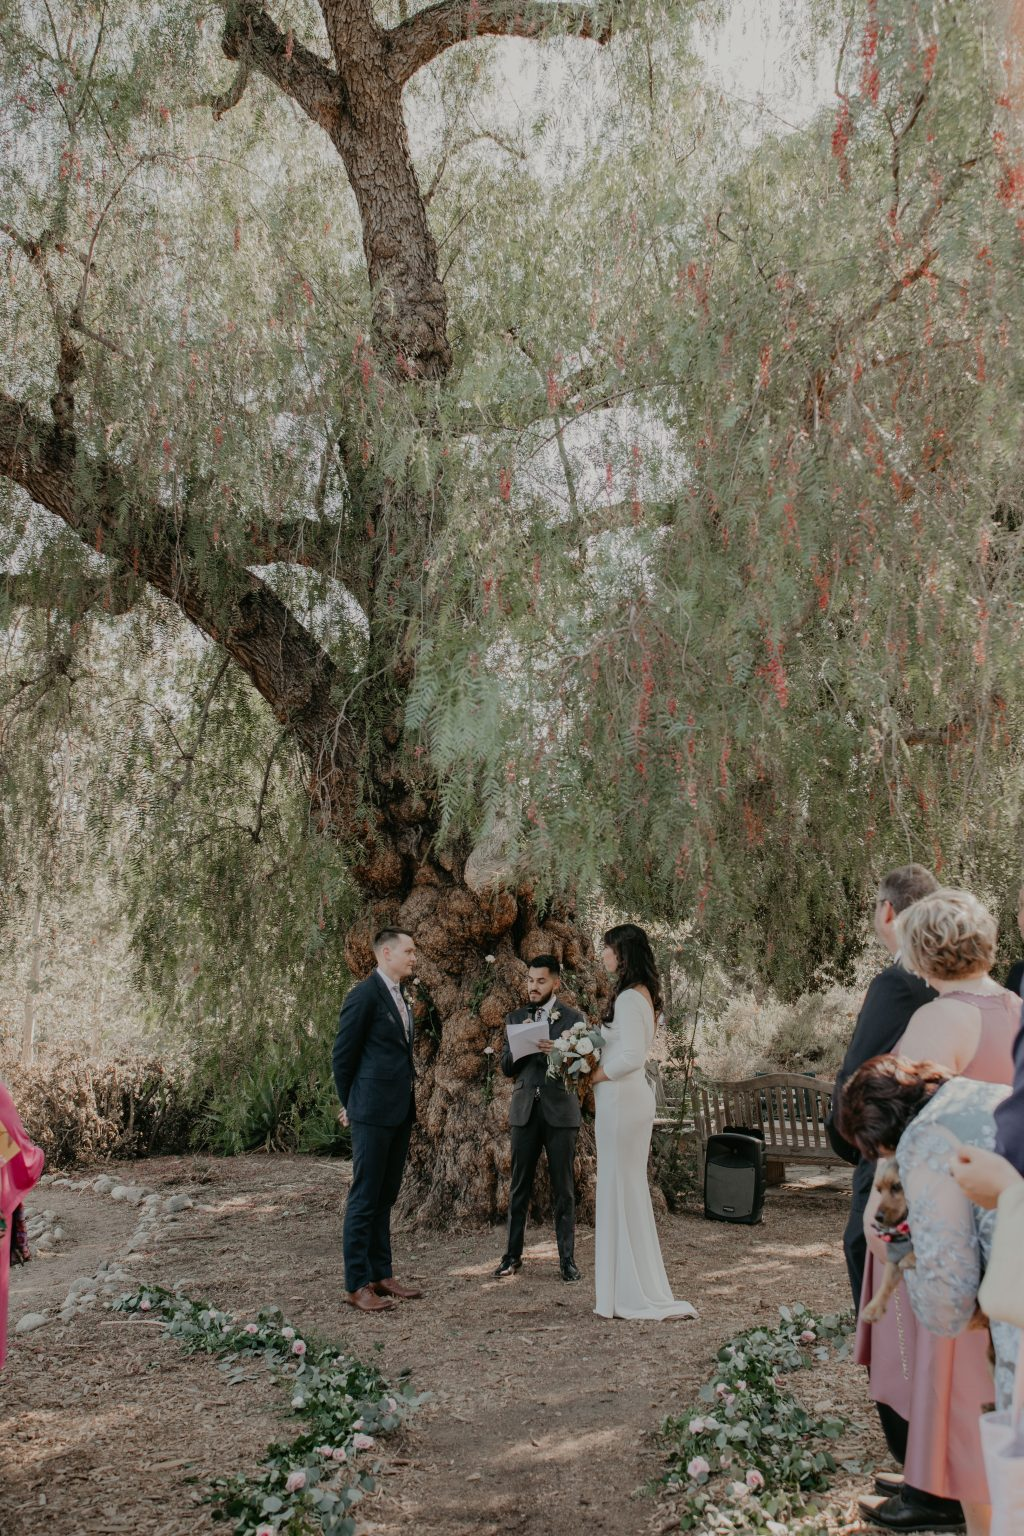 How to Create the Perfect Wedding Timeline for Your Big Day